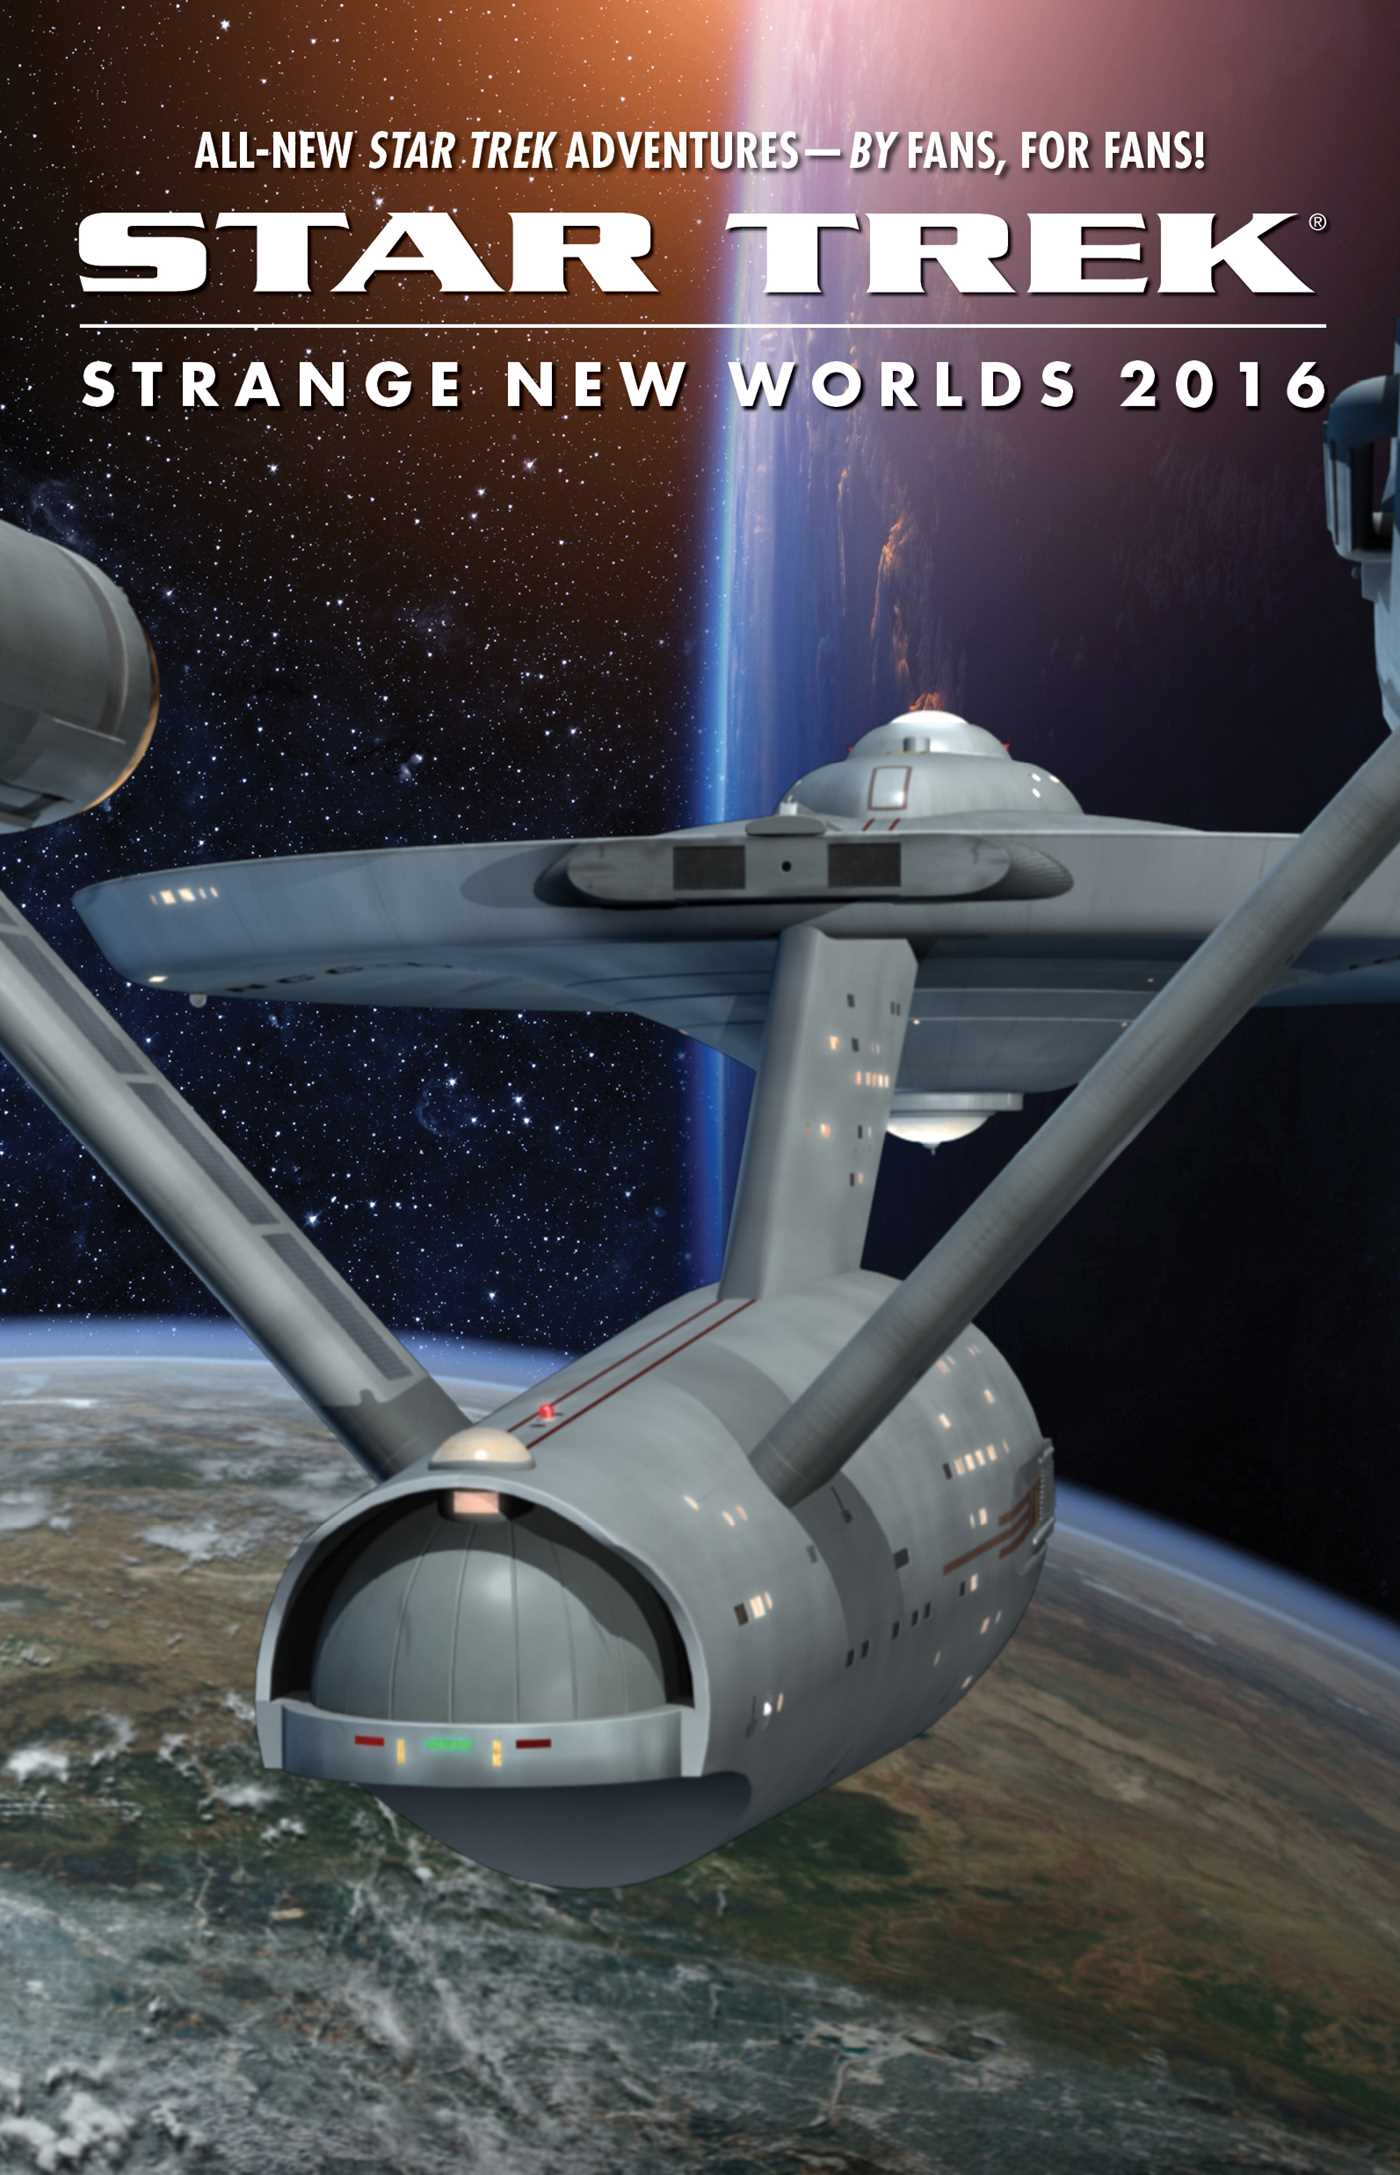 Strange new worlds 2016 9781501161582 hr